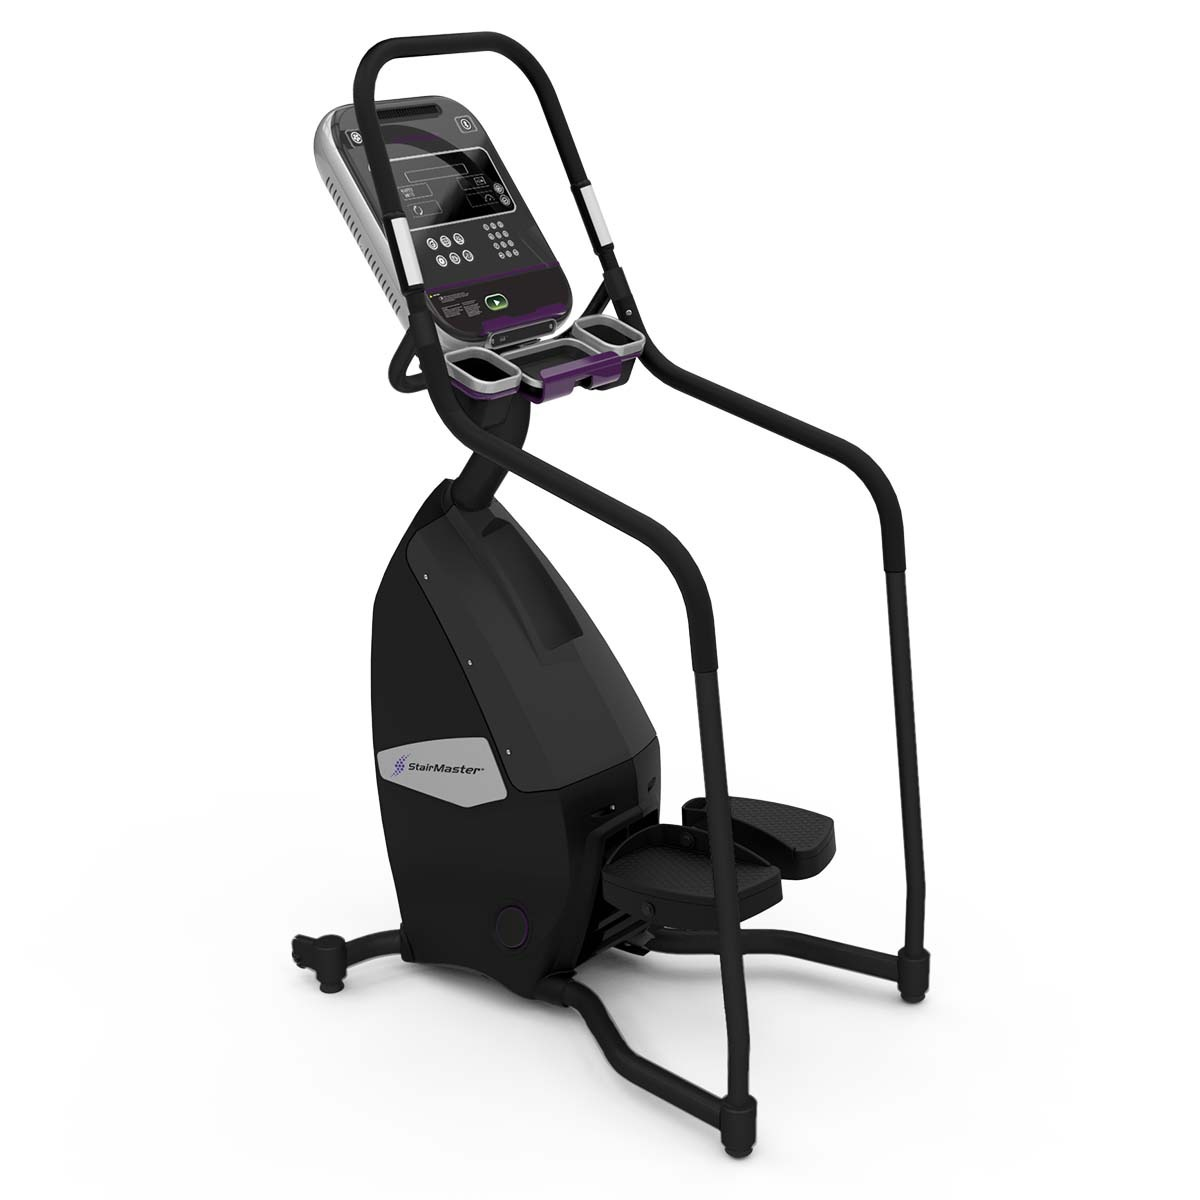 Vancouver StairMaster Free Climber - Stepper - Lifestyle Equipment